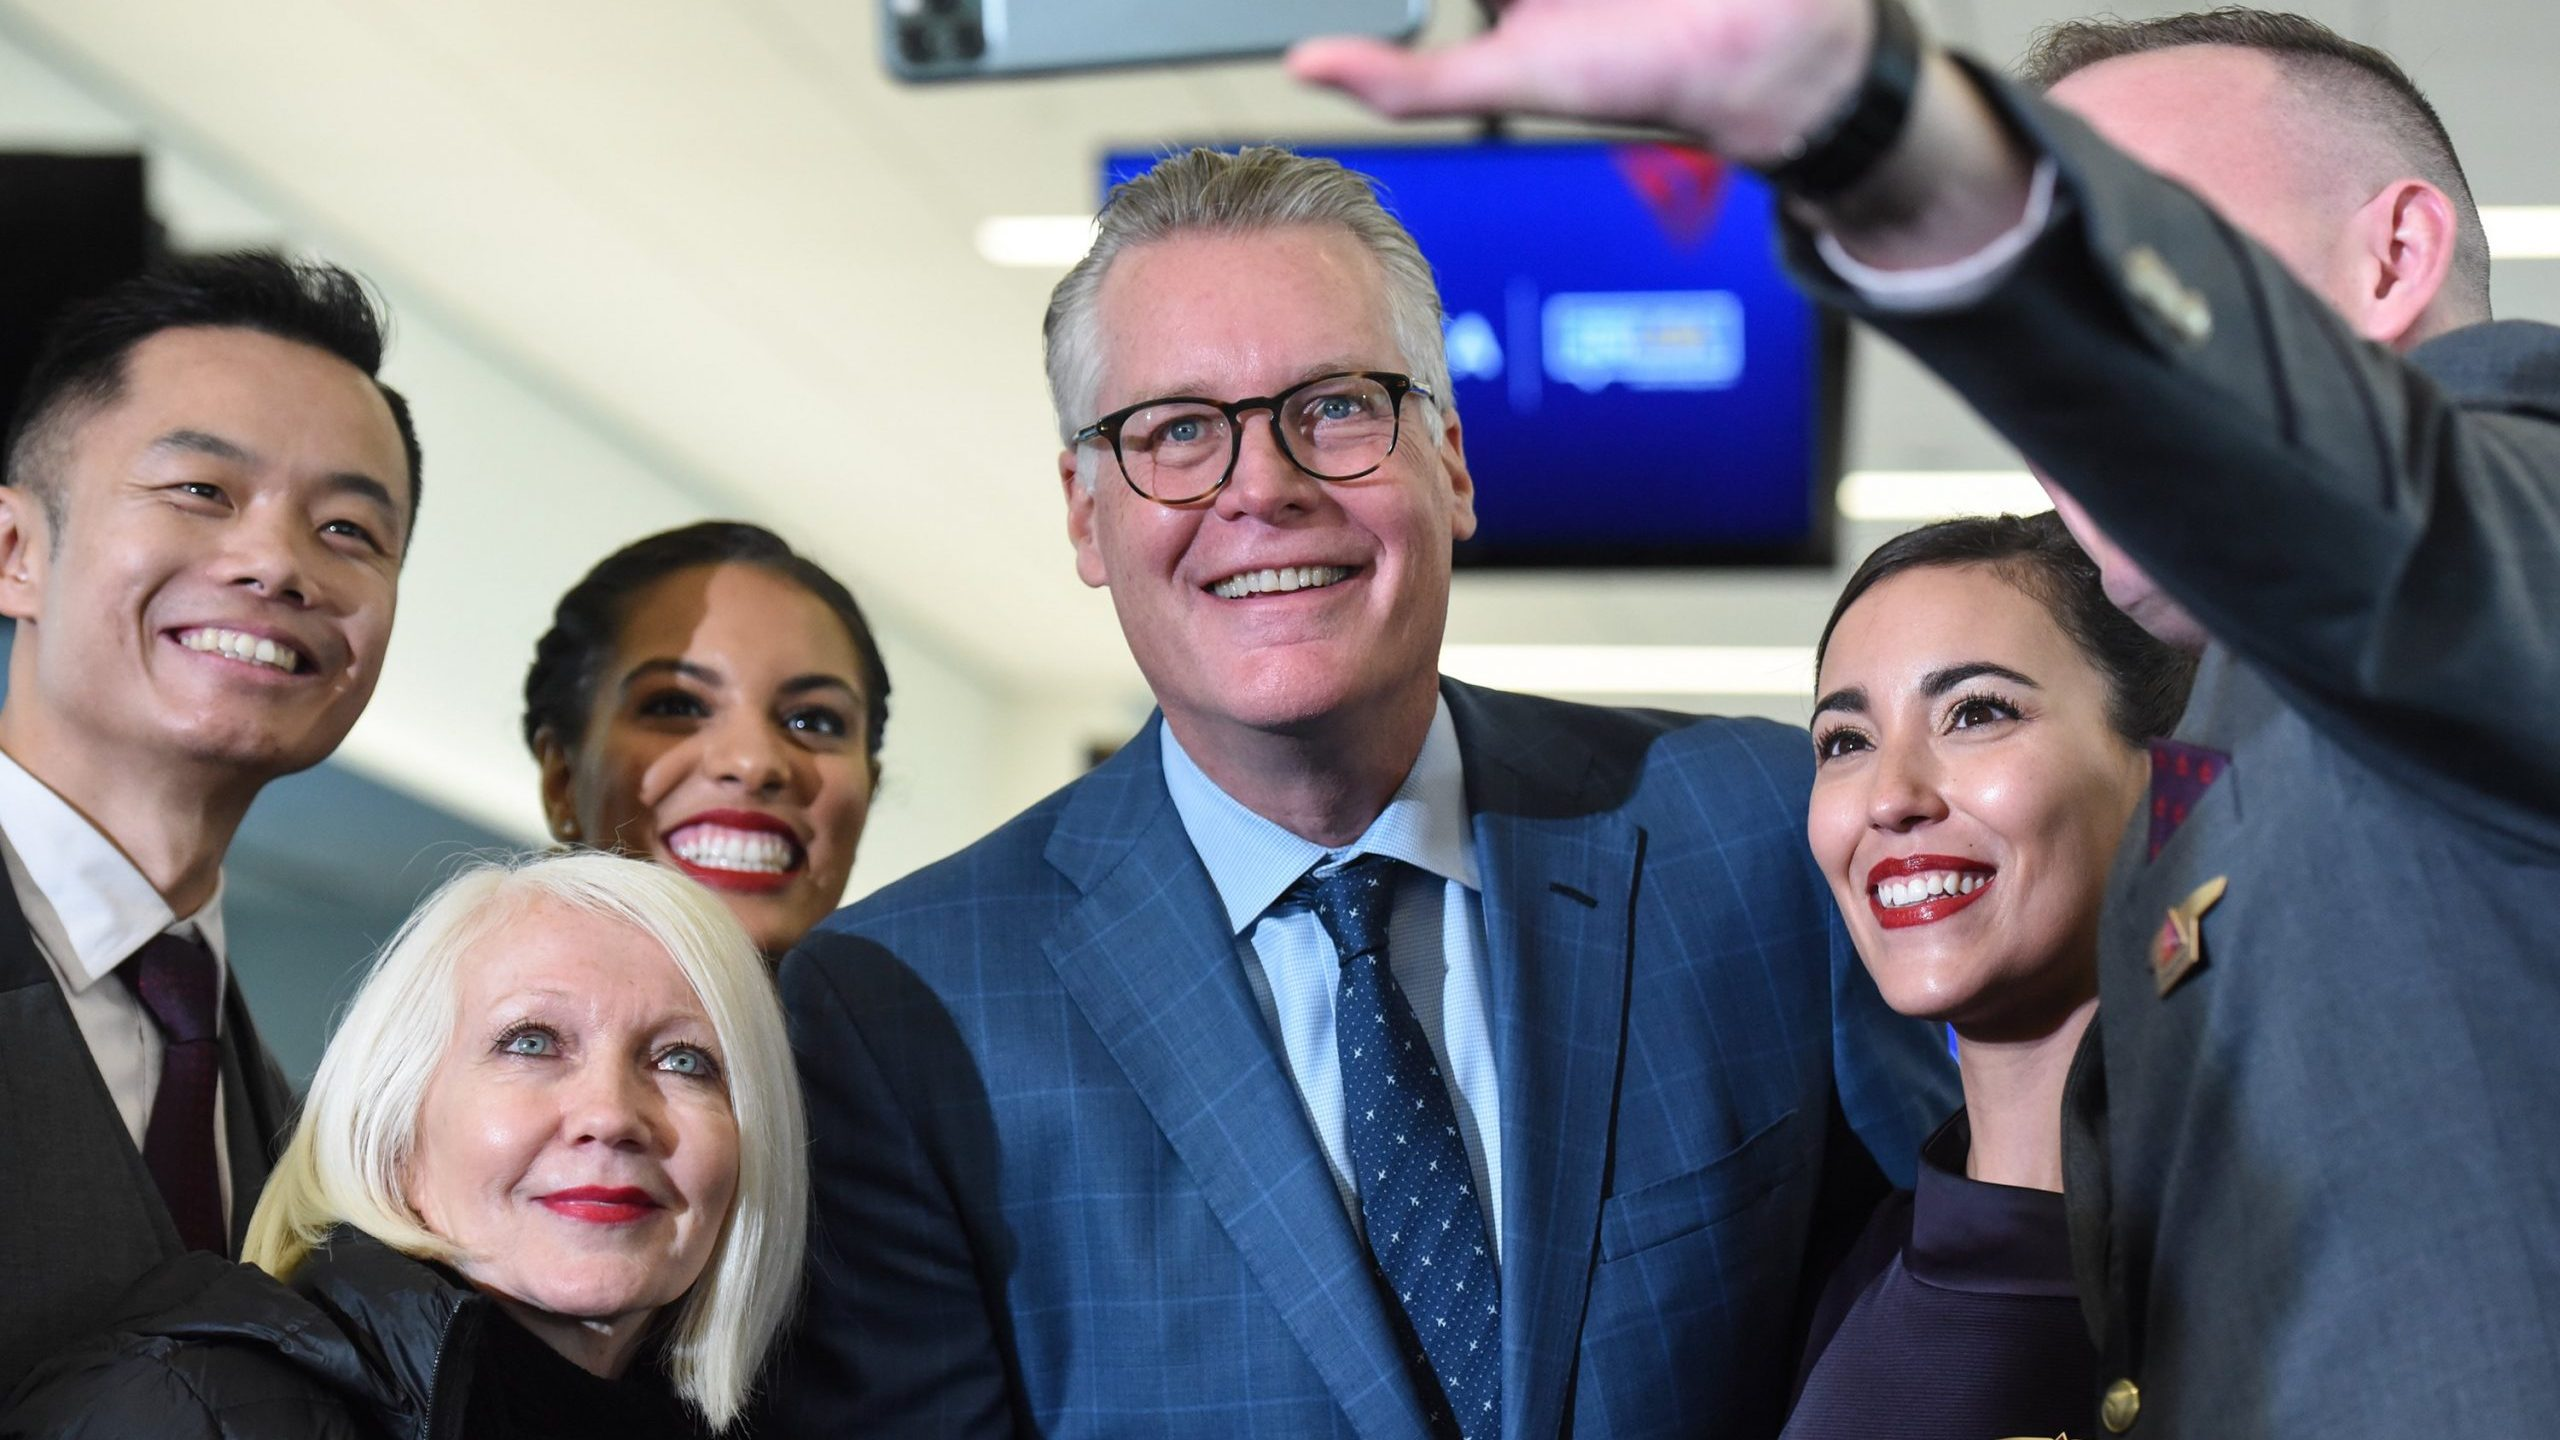 Delta CEO Ed Bastian and employees are pictured on October 29, 2019 in New York City. (Credit: Stephanie Keith/Getty Images)